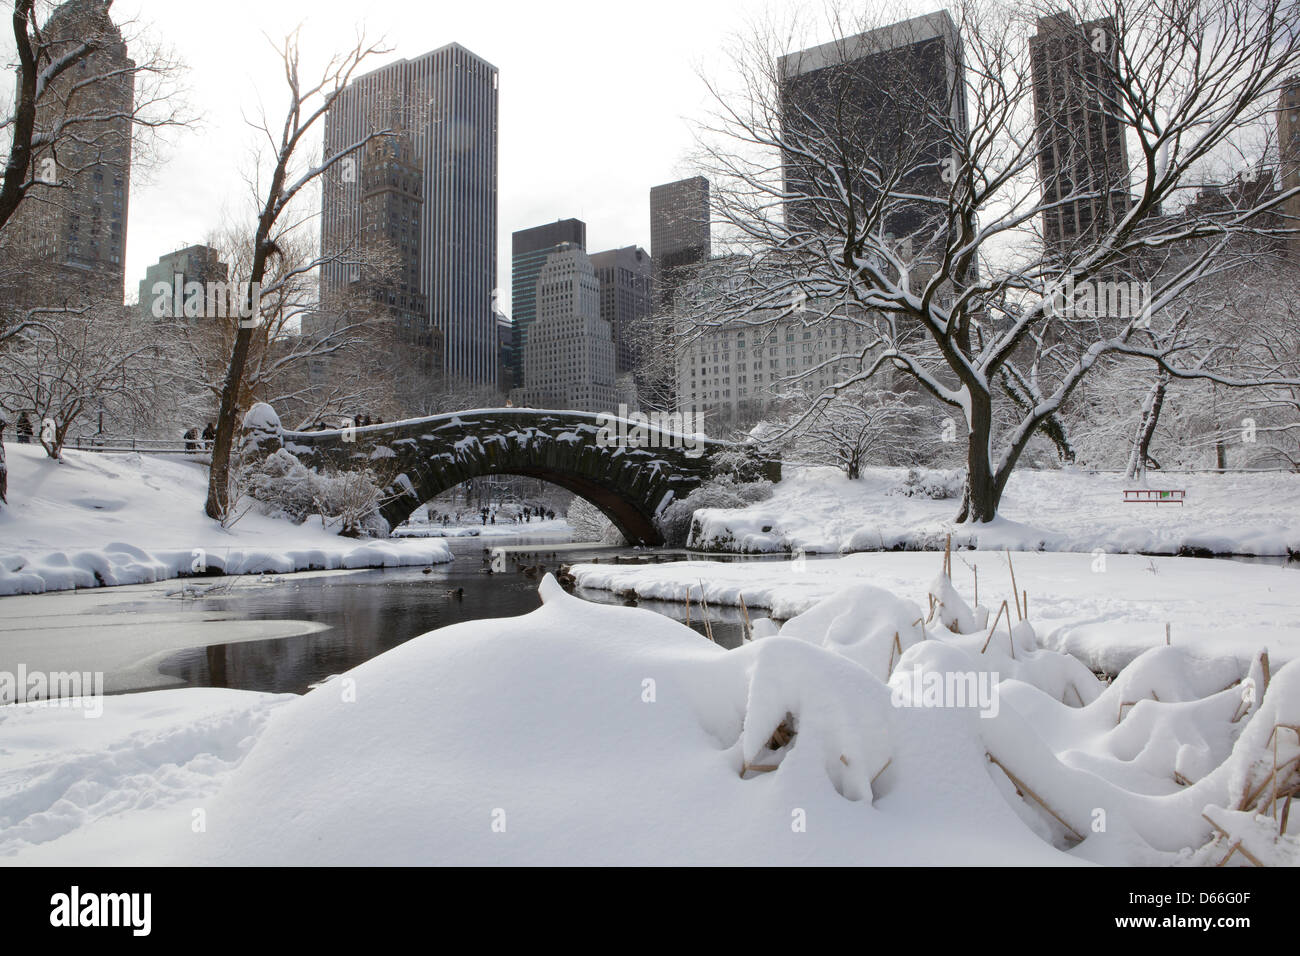 snow in Central park New York - Stock Image